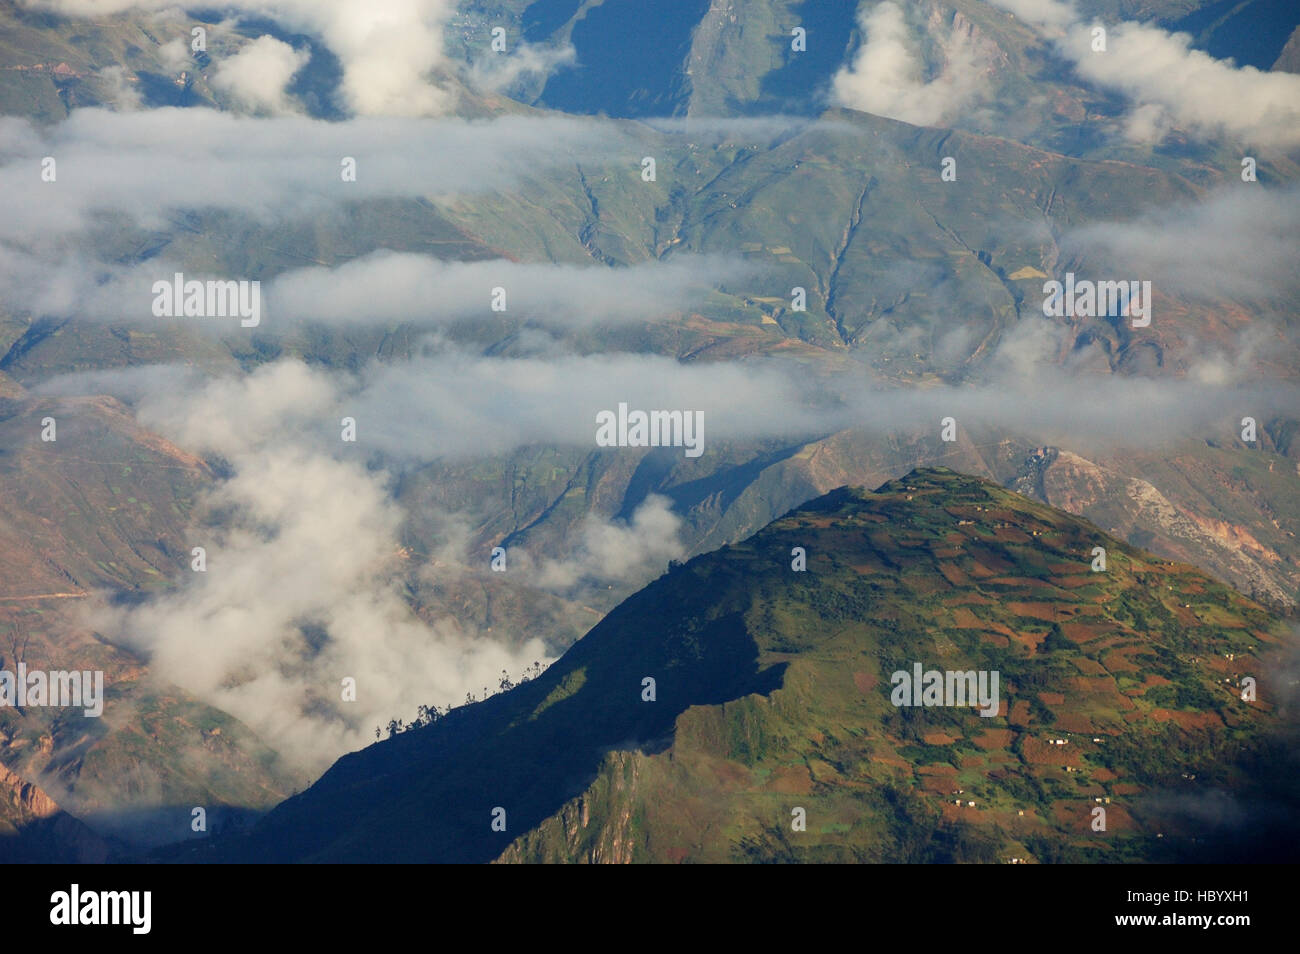 Foothills in the clouds, seen from Laguna Chillata near Mt. Illampu, Bolivia, South America - Stock Image